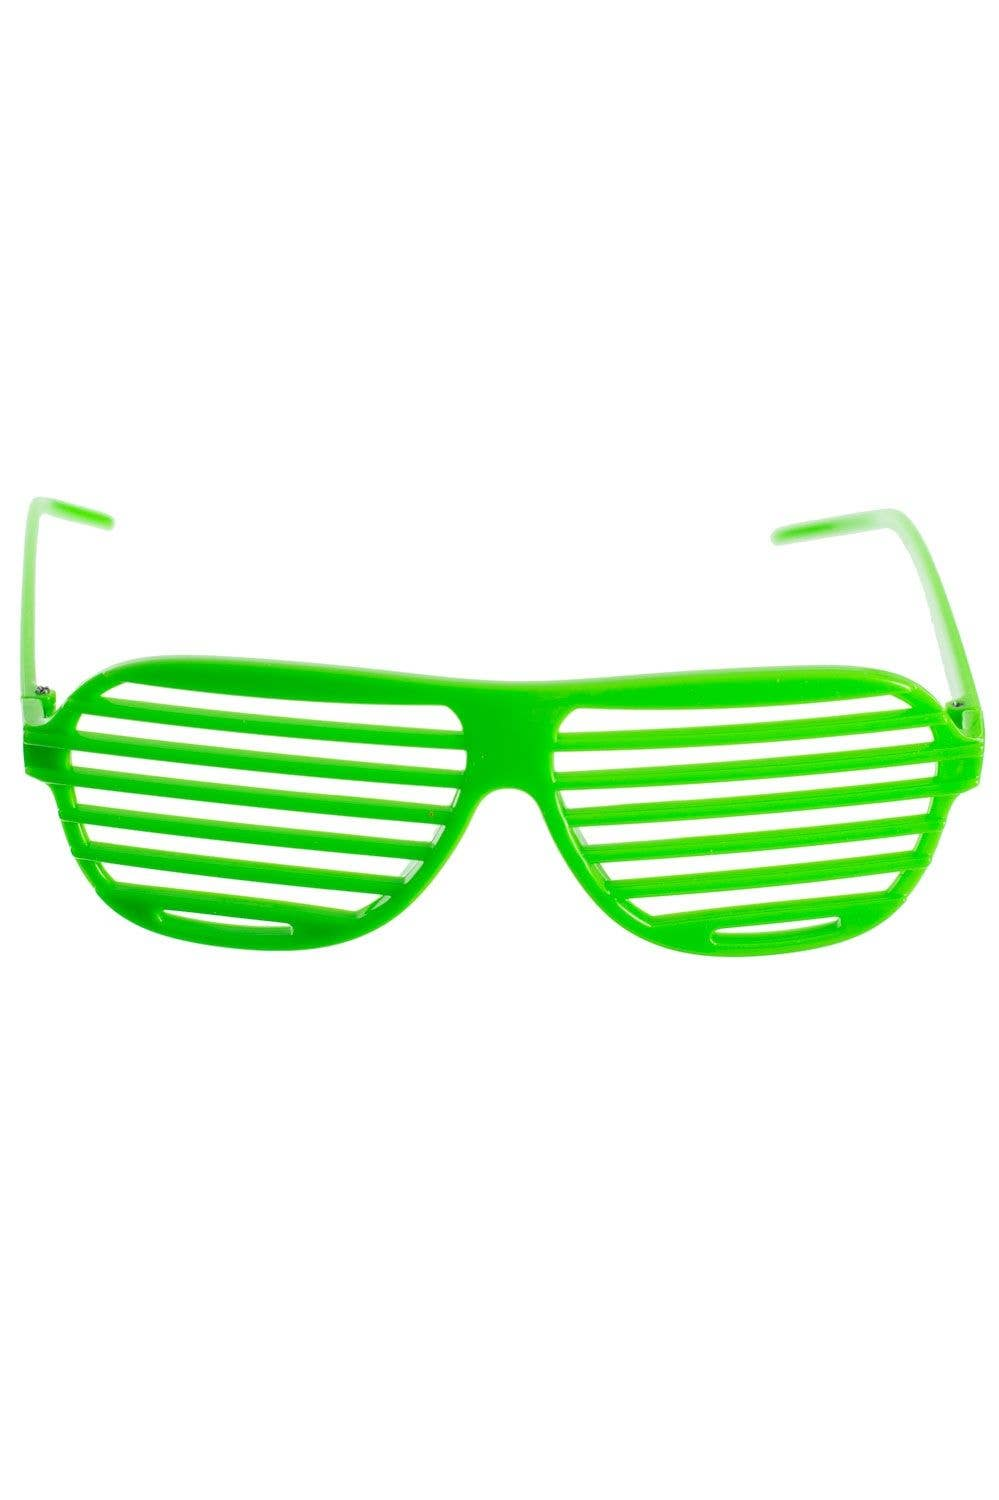 685d1946856 Bright Green Shutter Shades Glasses Fancy Dress Accessory Main Image